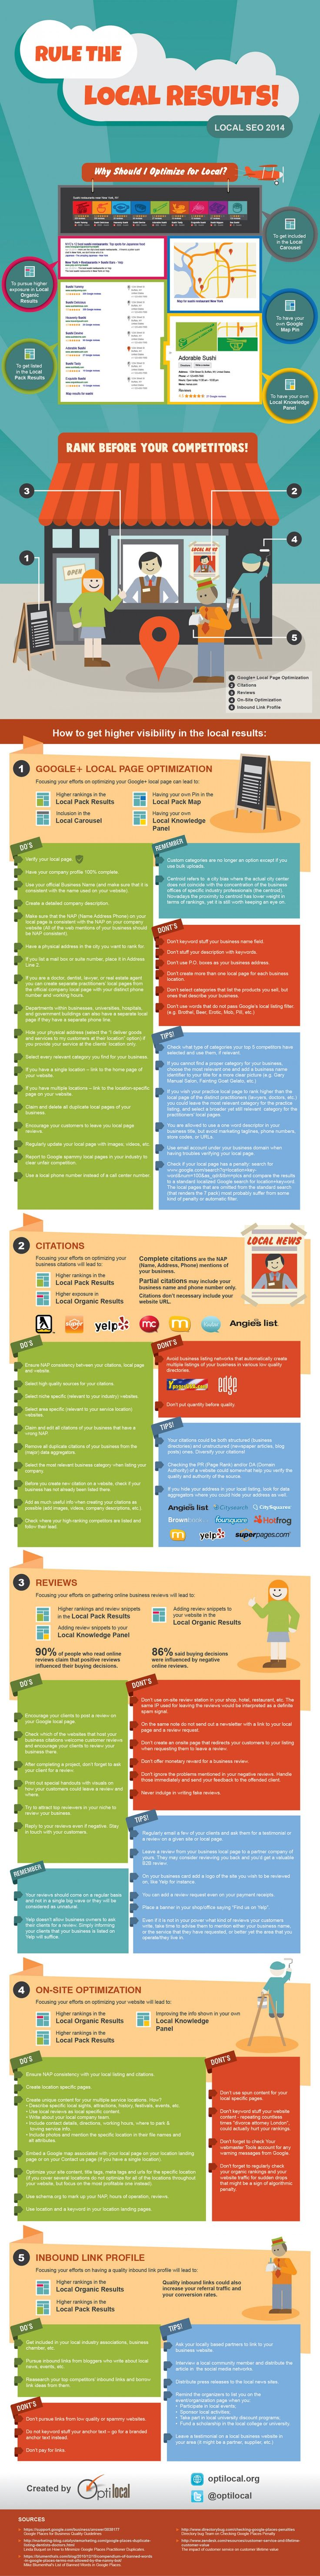 Rule The Local Results #LocalSEO. source: -www.letsgetoptimized.com